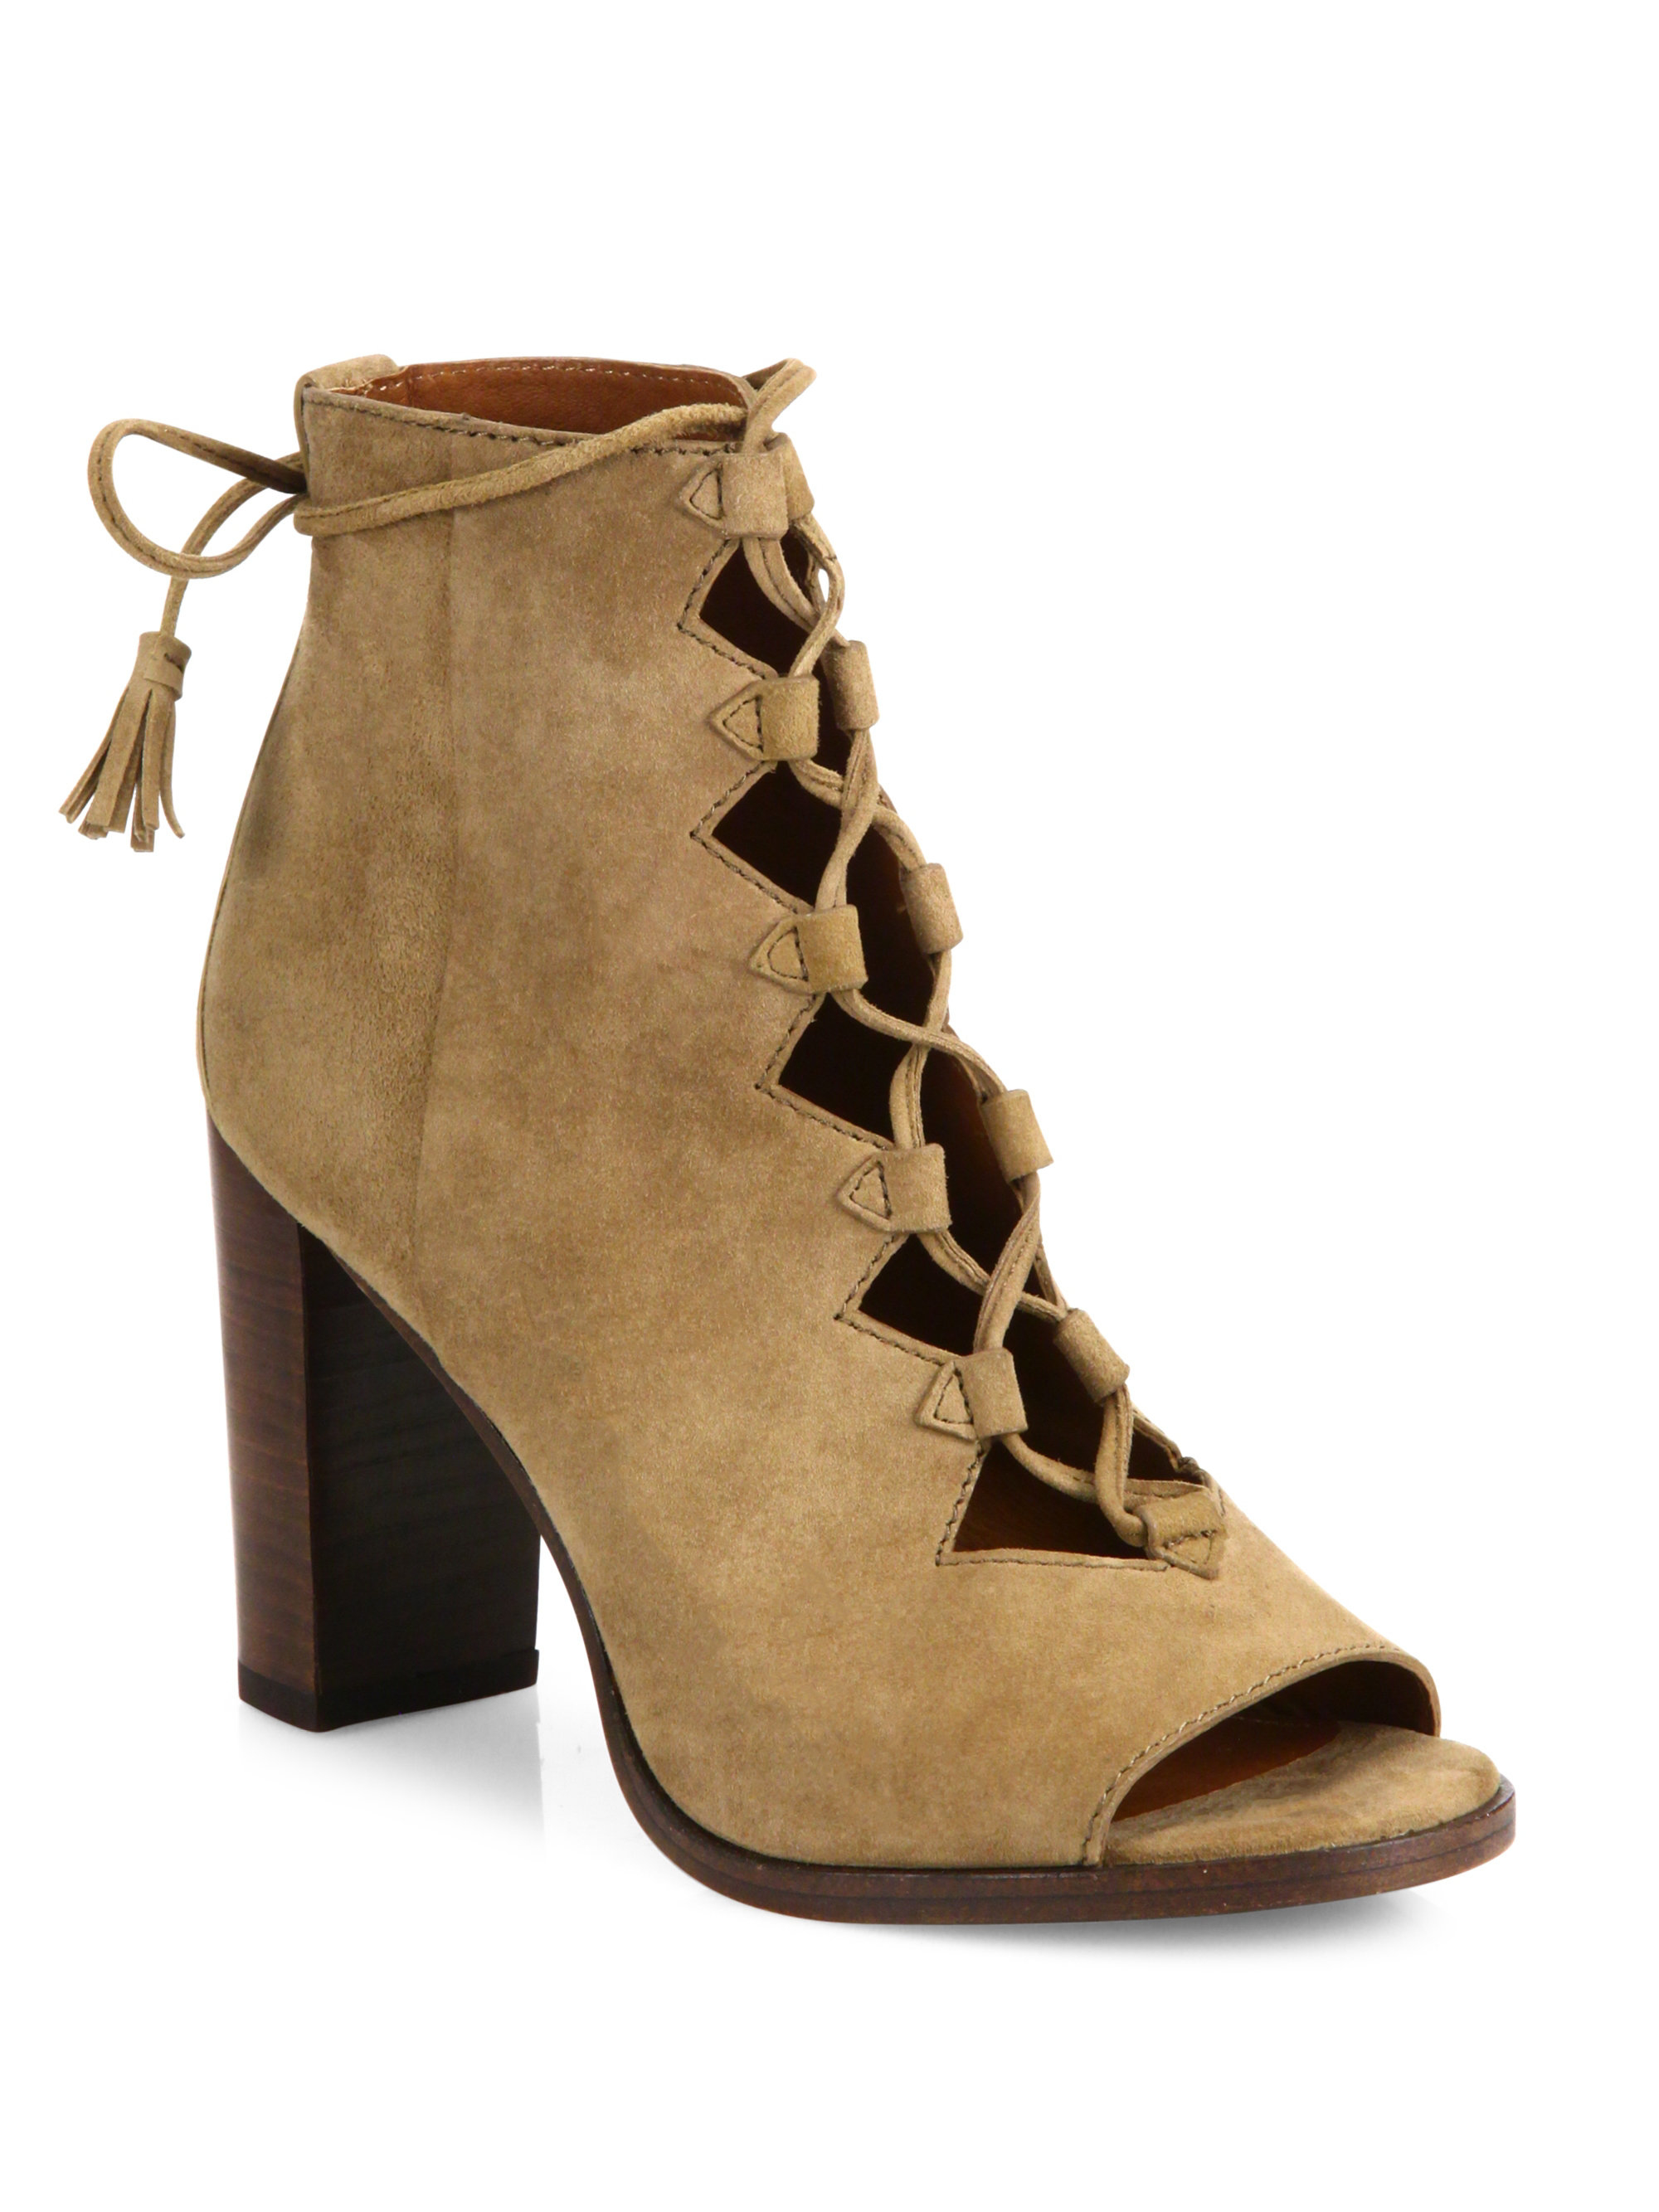 Frye Gabby Ghillie Suede Lace Up Booties Lyst